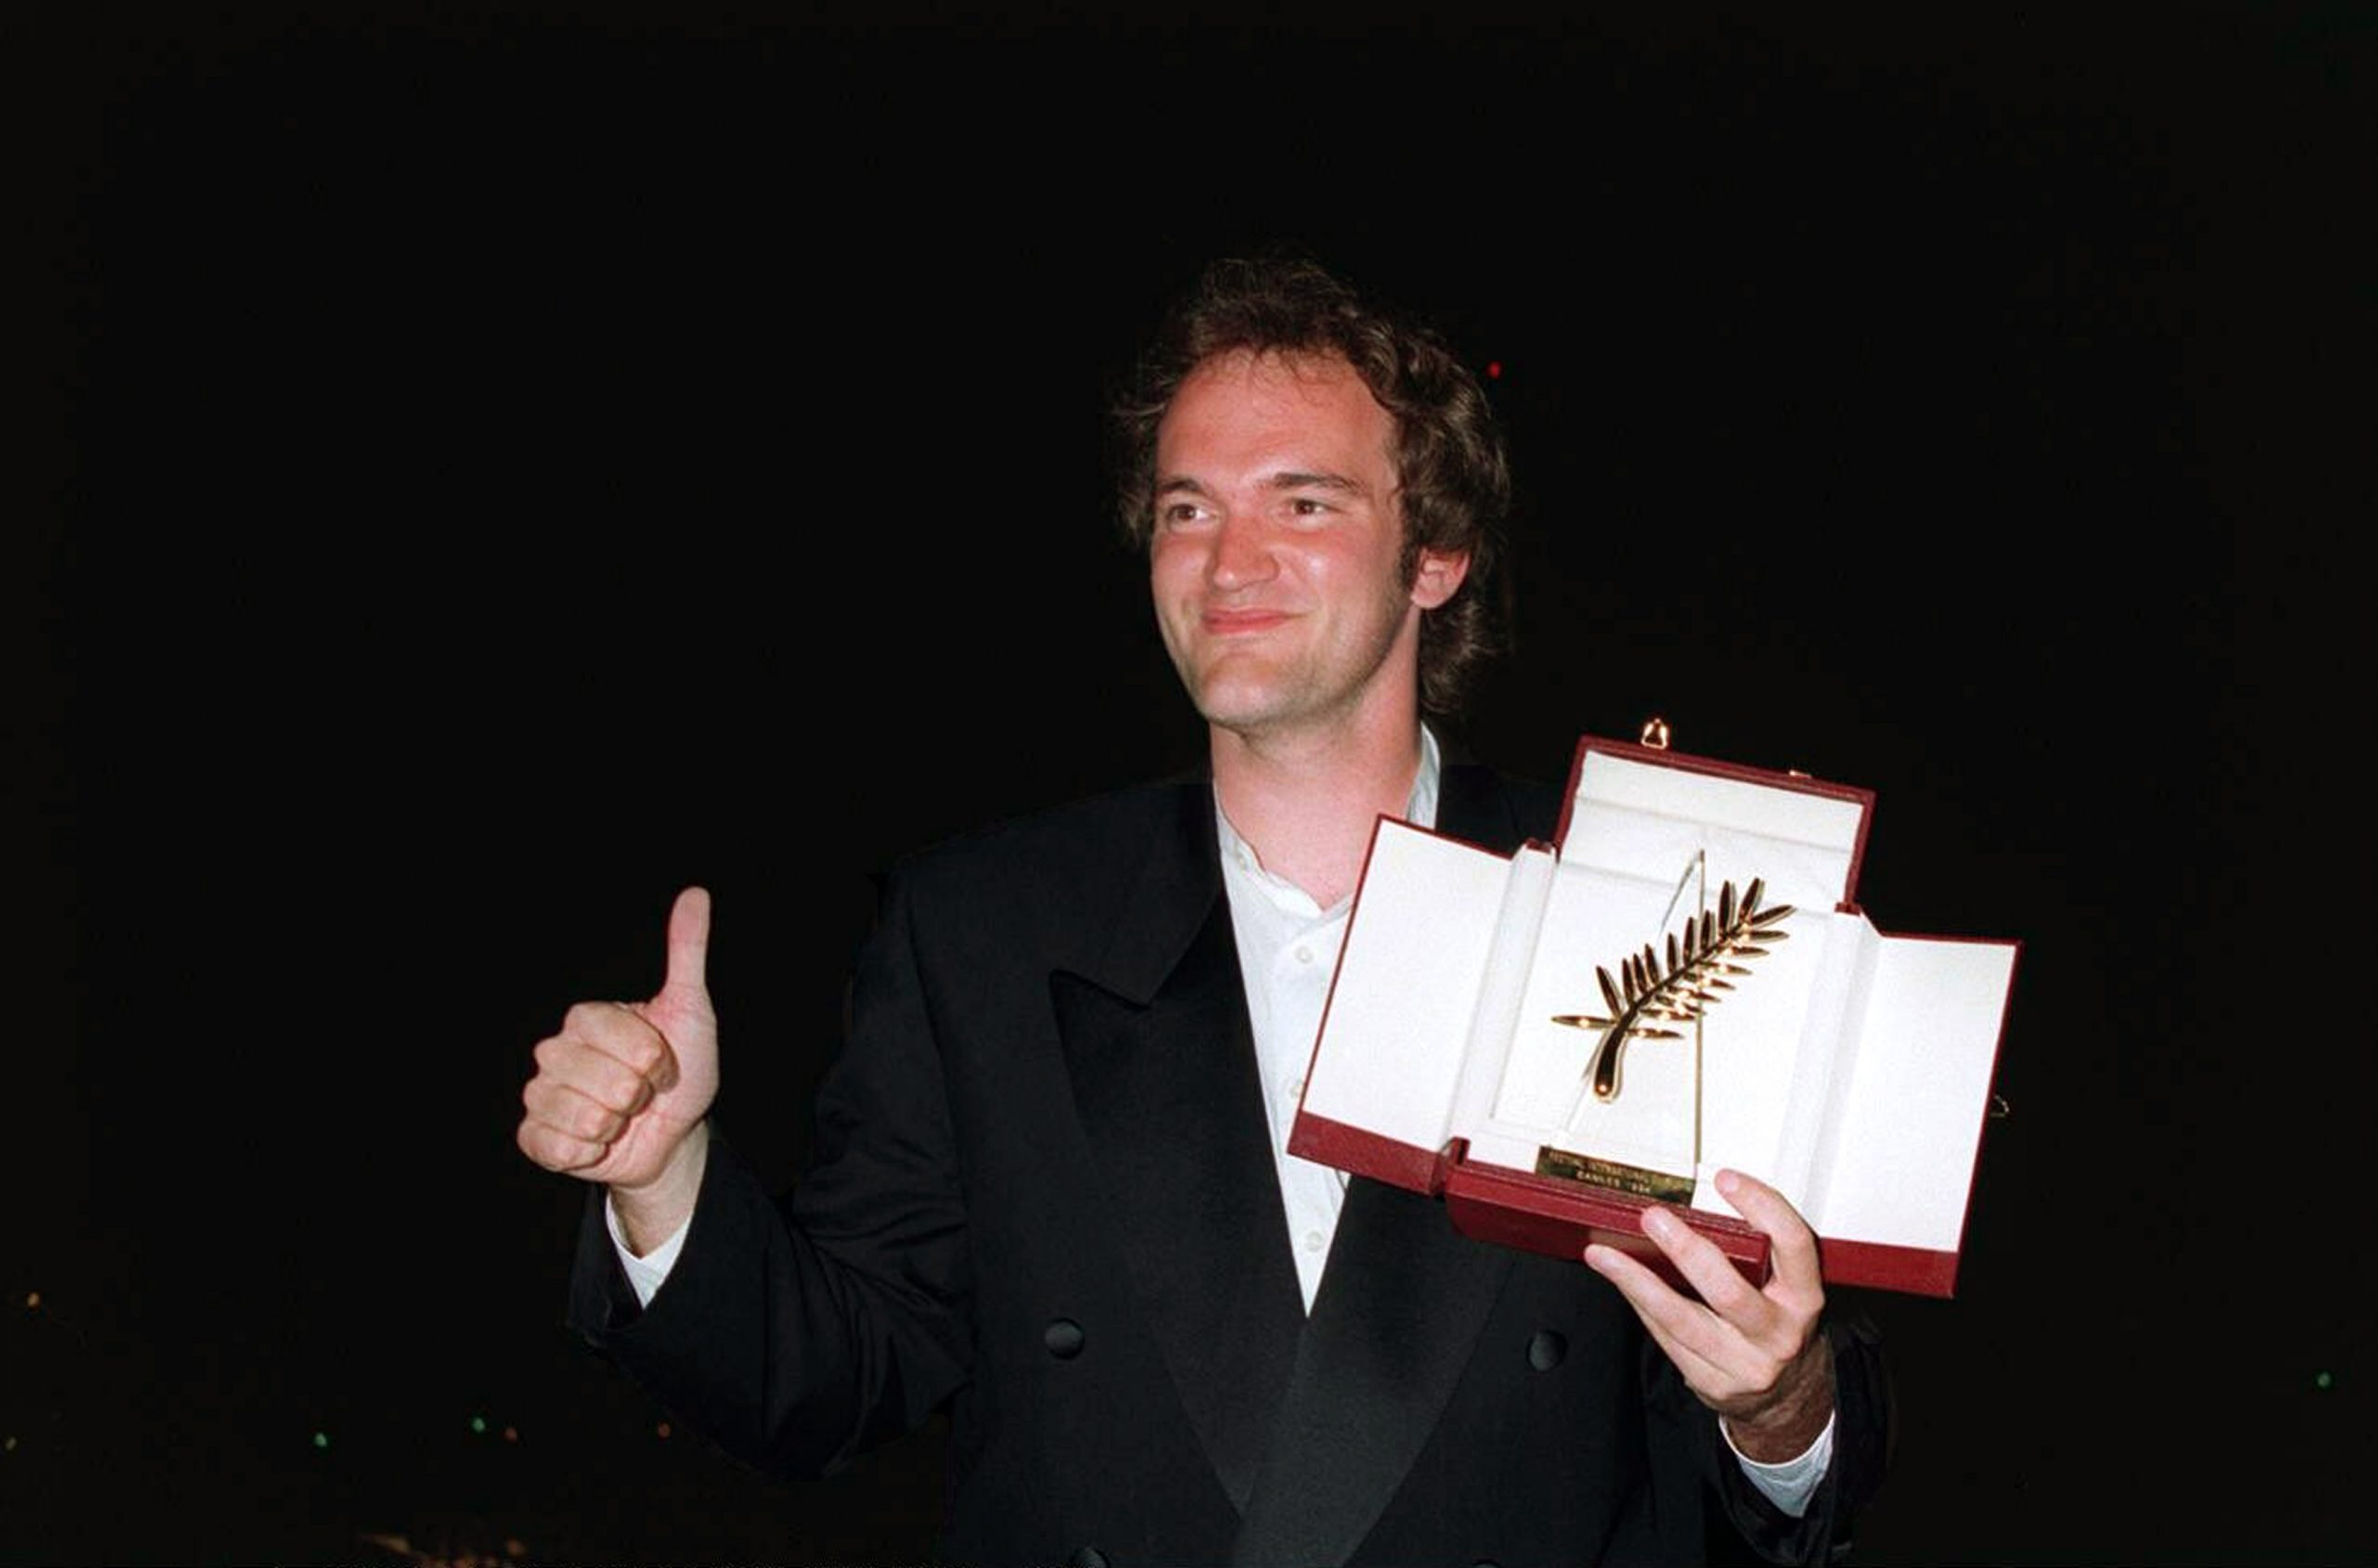 Quentin Tarantino with the Palme d'Or won at Cannes in 1994 with the movie Pulp Fiction